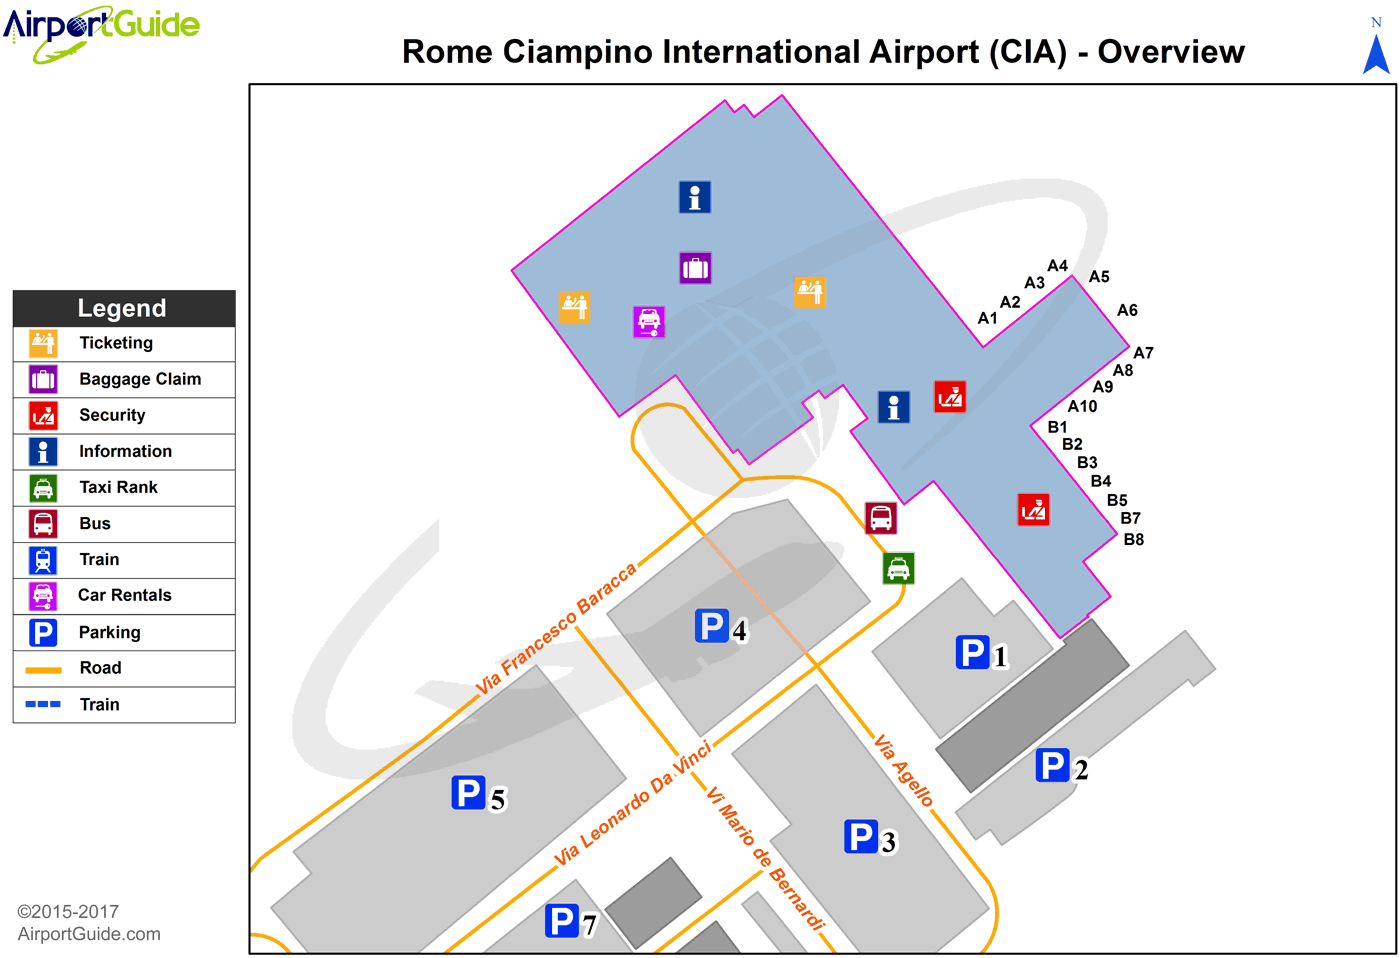 Roma - Ciampino (CIA) Airport Terminal Map - Overview